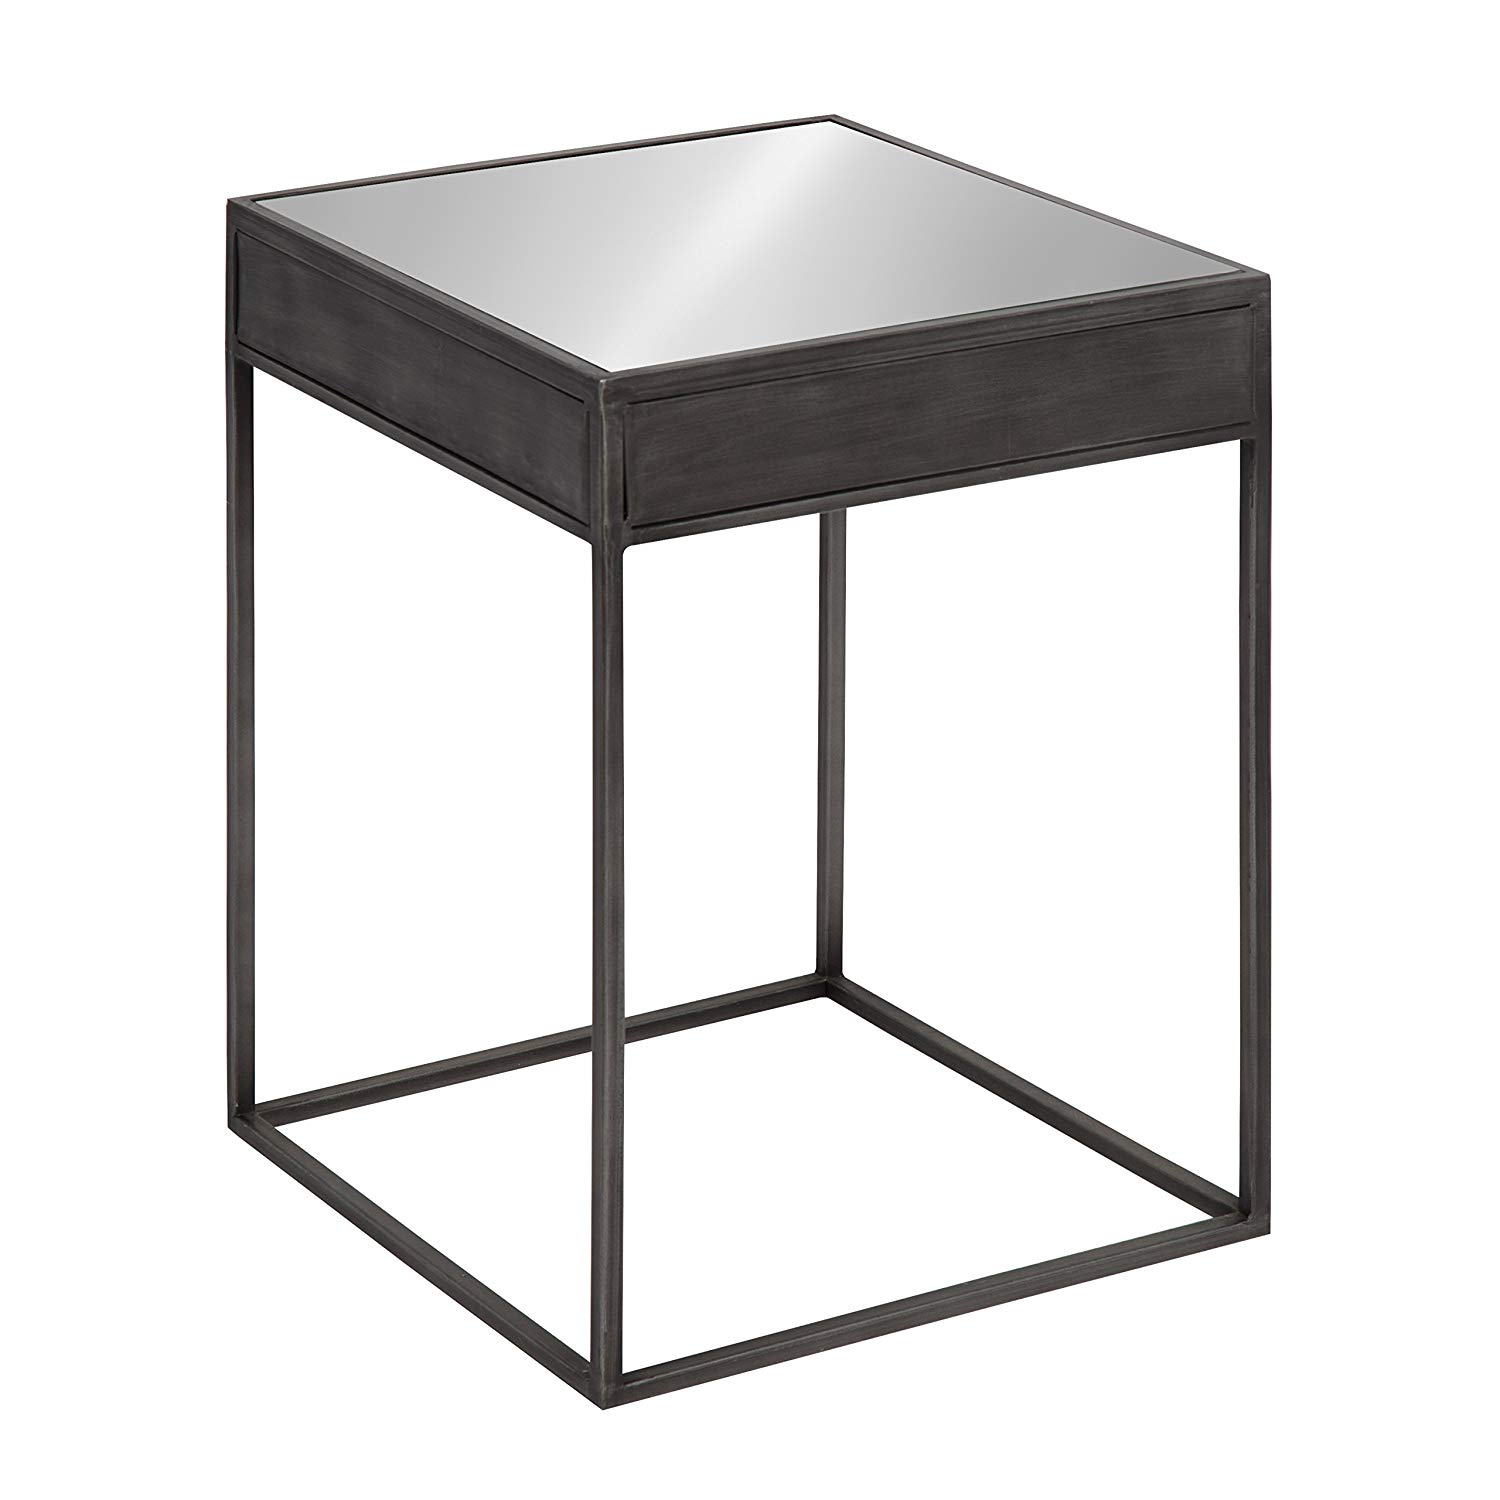 small metal accent table find side get quotations kate and laurel aleksand industrial modern square mirror end metallic sofa with console black gloss balcony patio furniture white